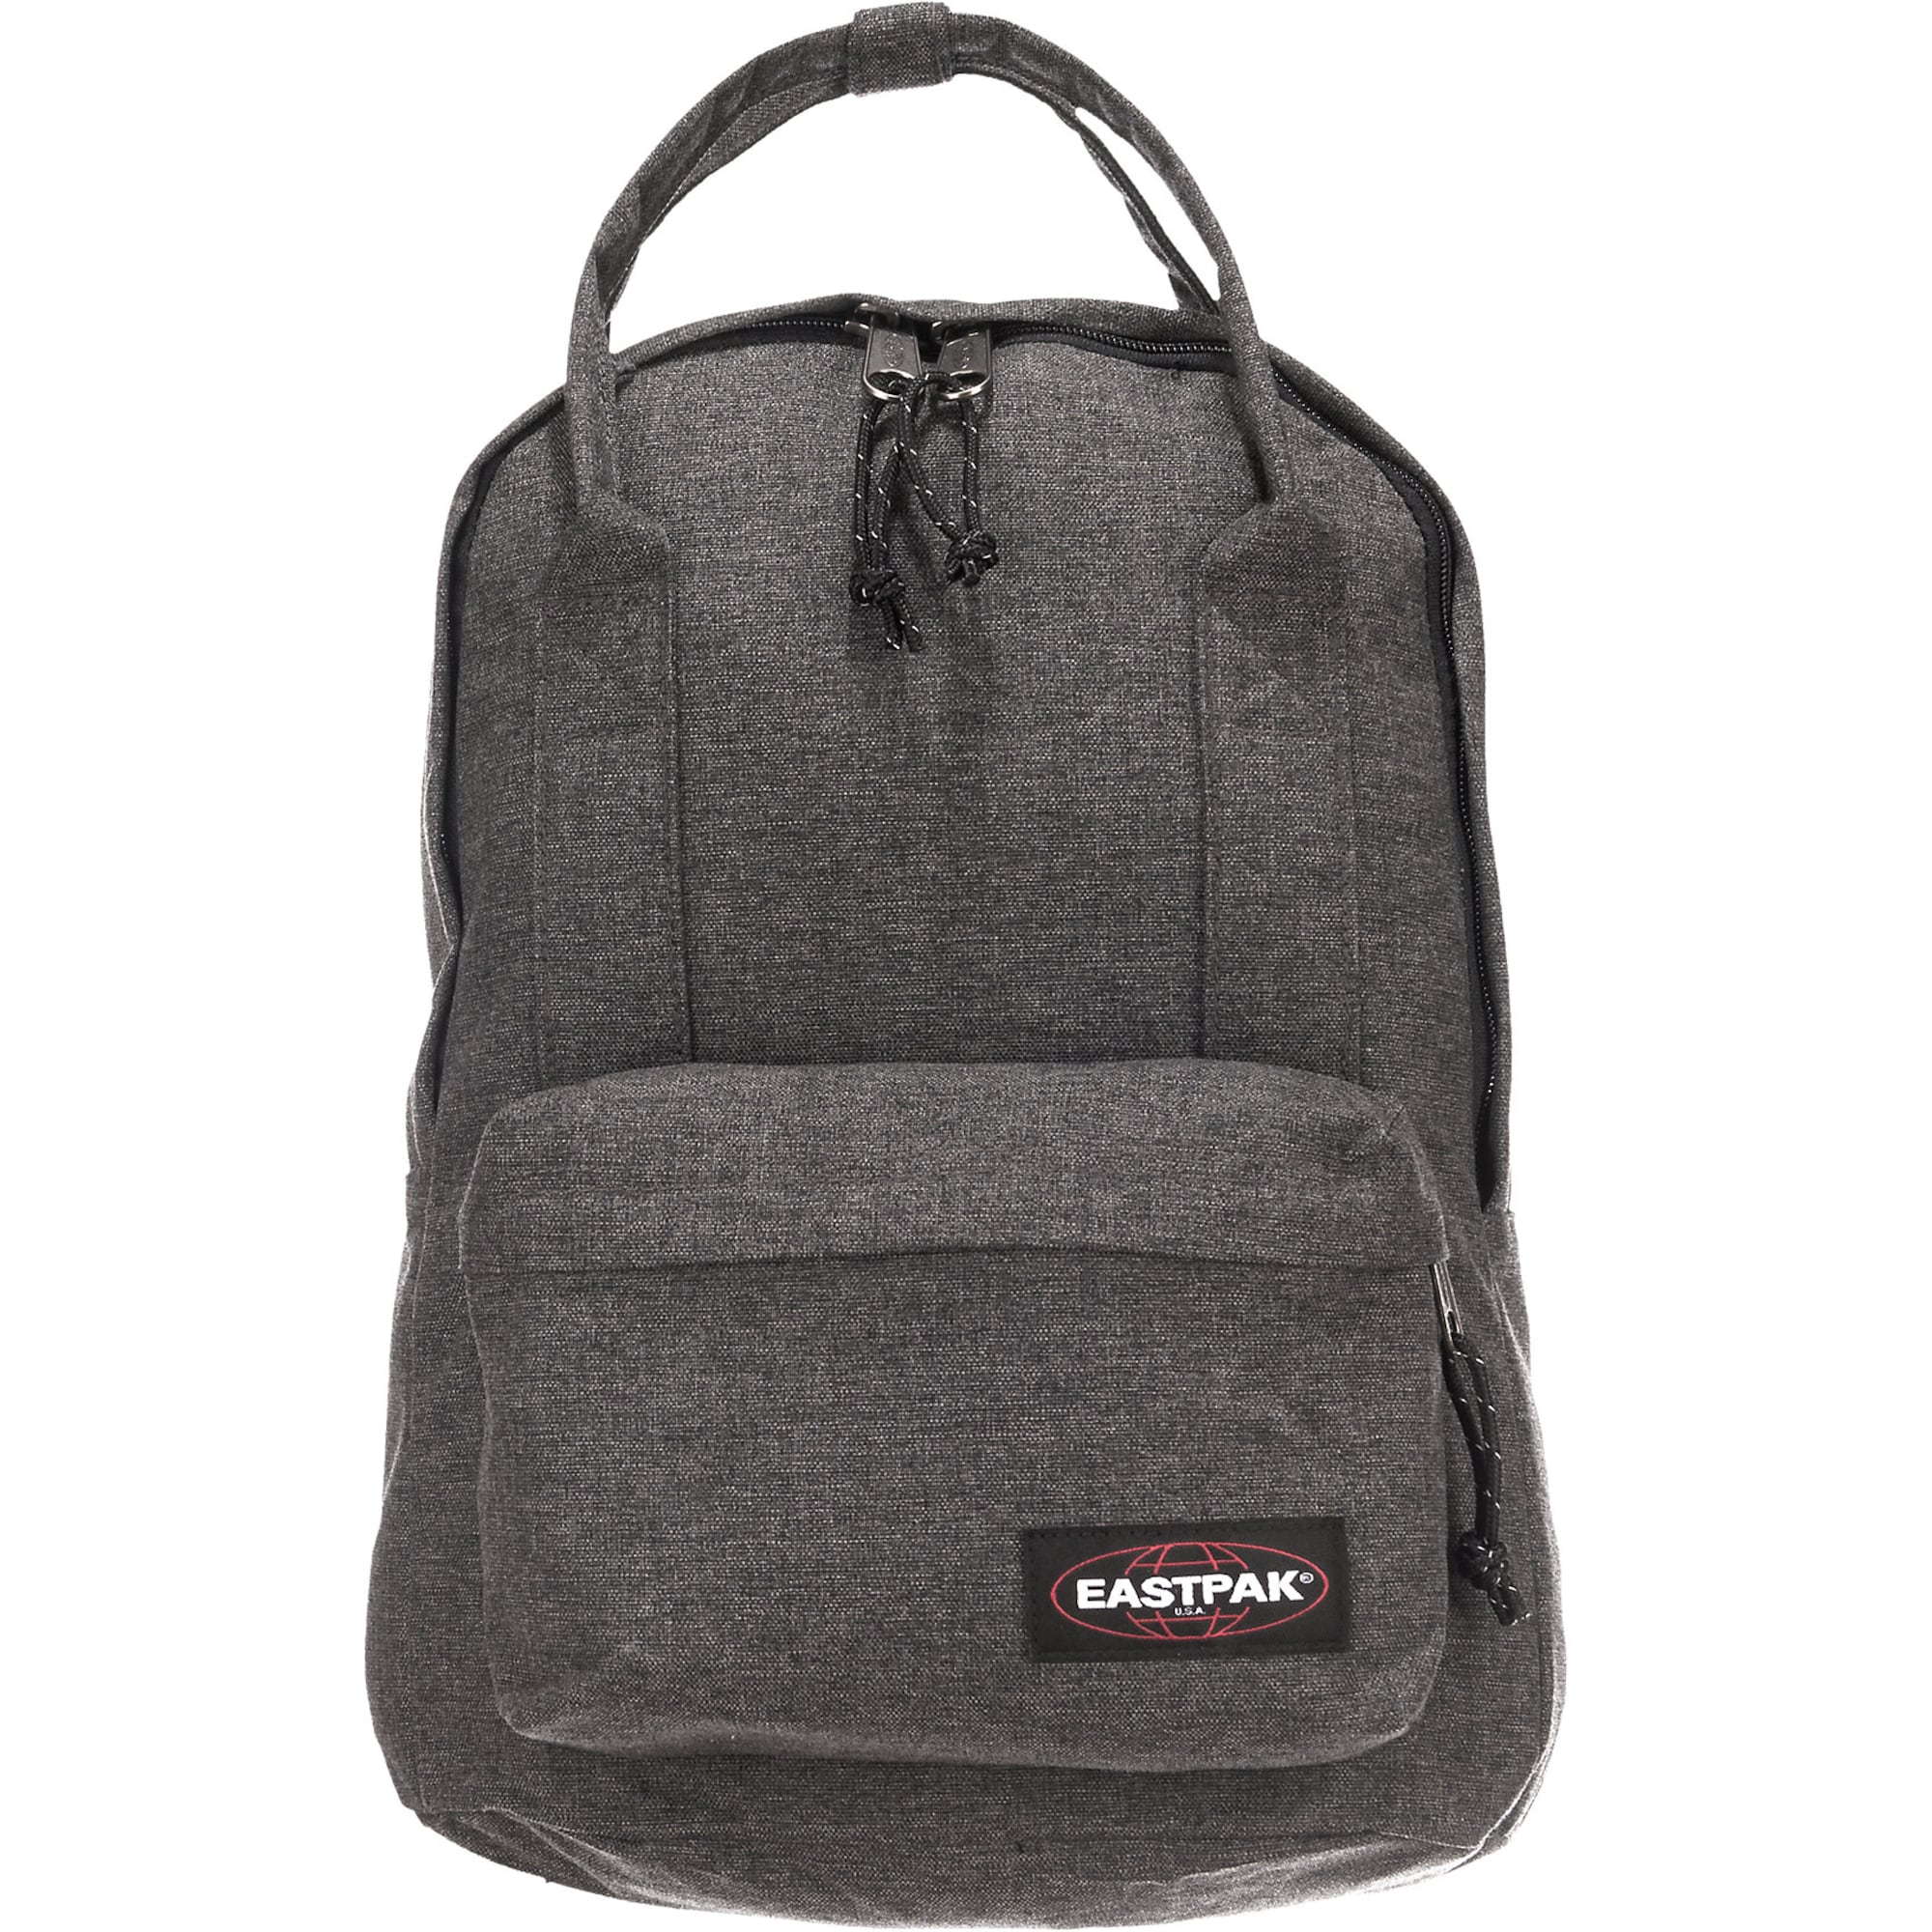 EASTPAK ´Pinnacle´ Rucksack